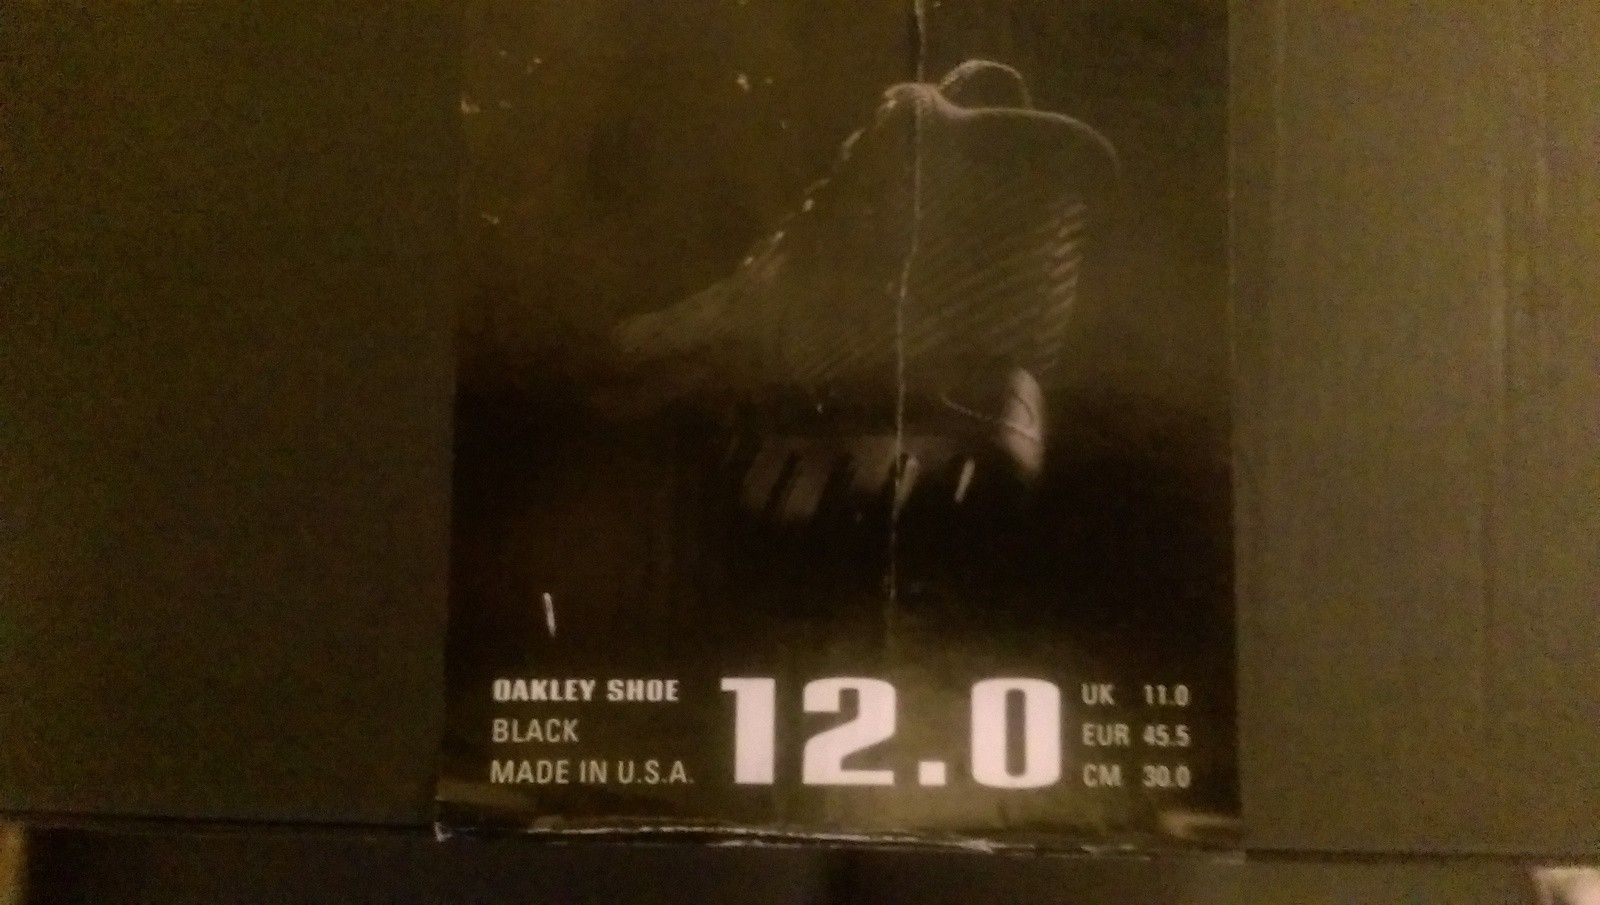 Oakley One Shoe Boot Black (US 12, UK 11) - IMAG1599.jpg